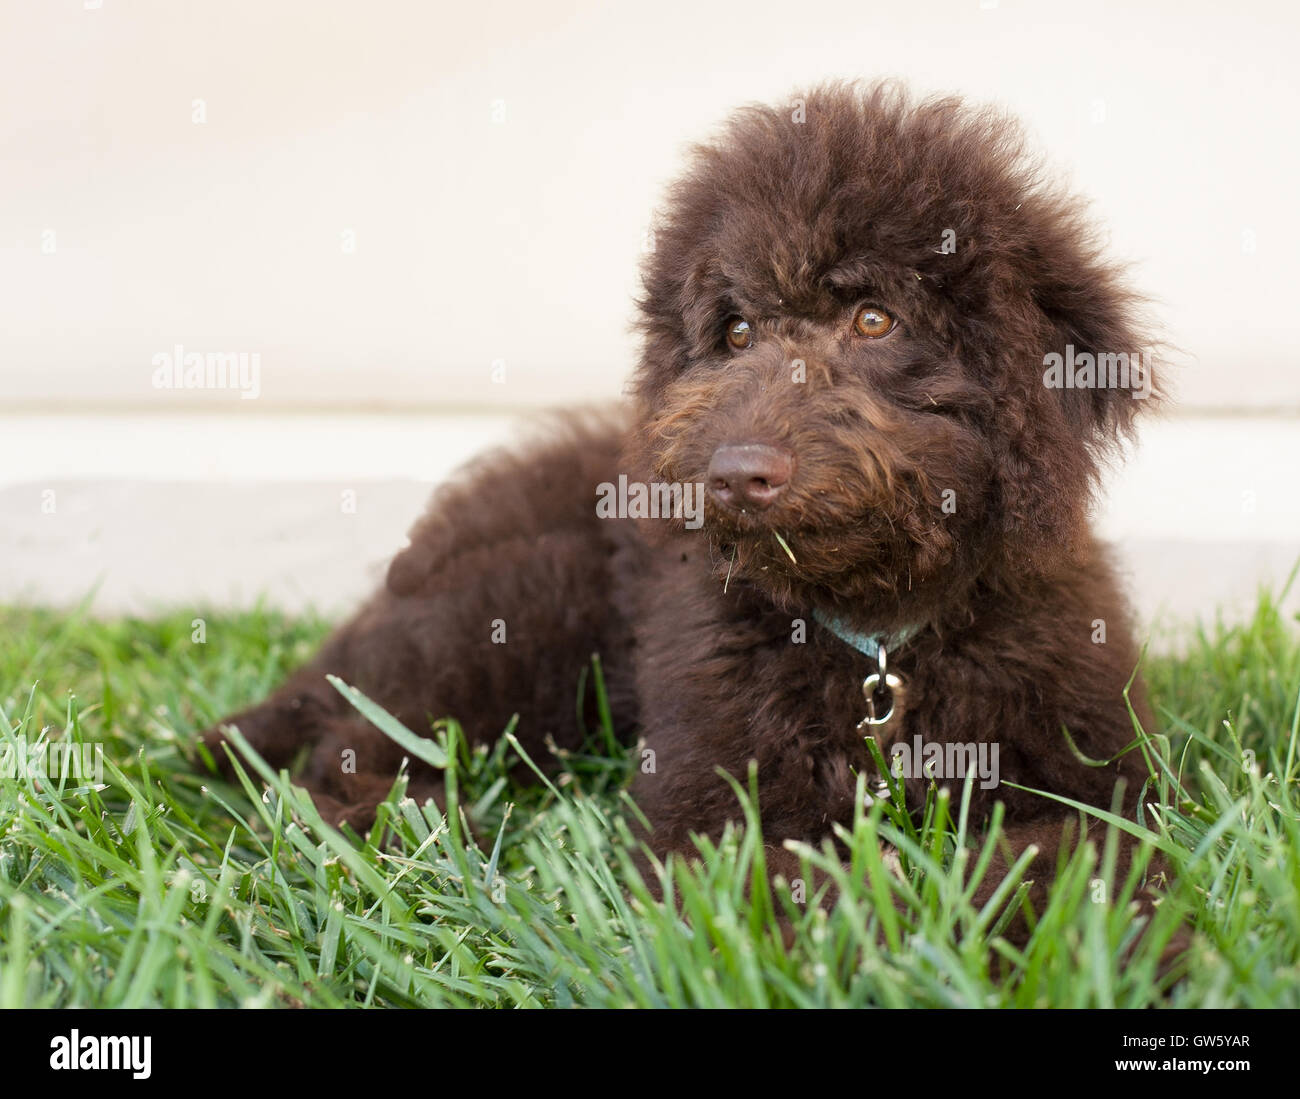 Chocolate labradoodle puppy dog lays on the grass.  A labradoodle is a cross between a poodle and a labrador retriever. - Stock Image